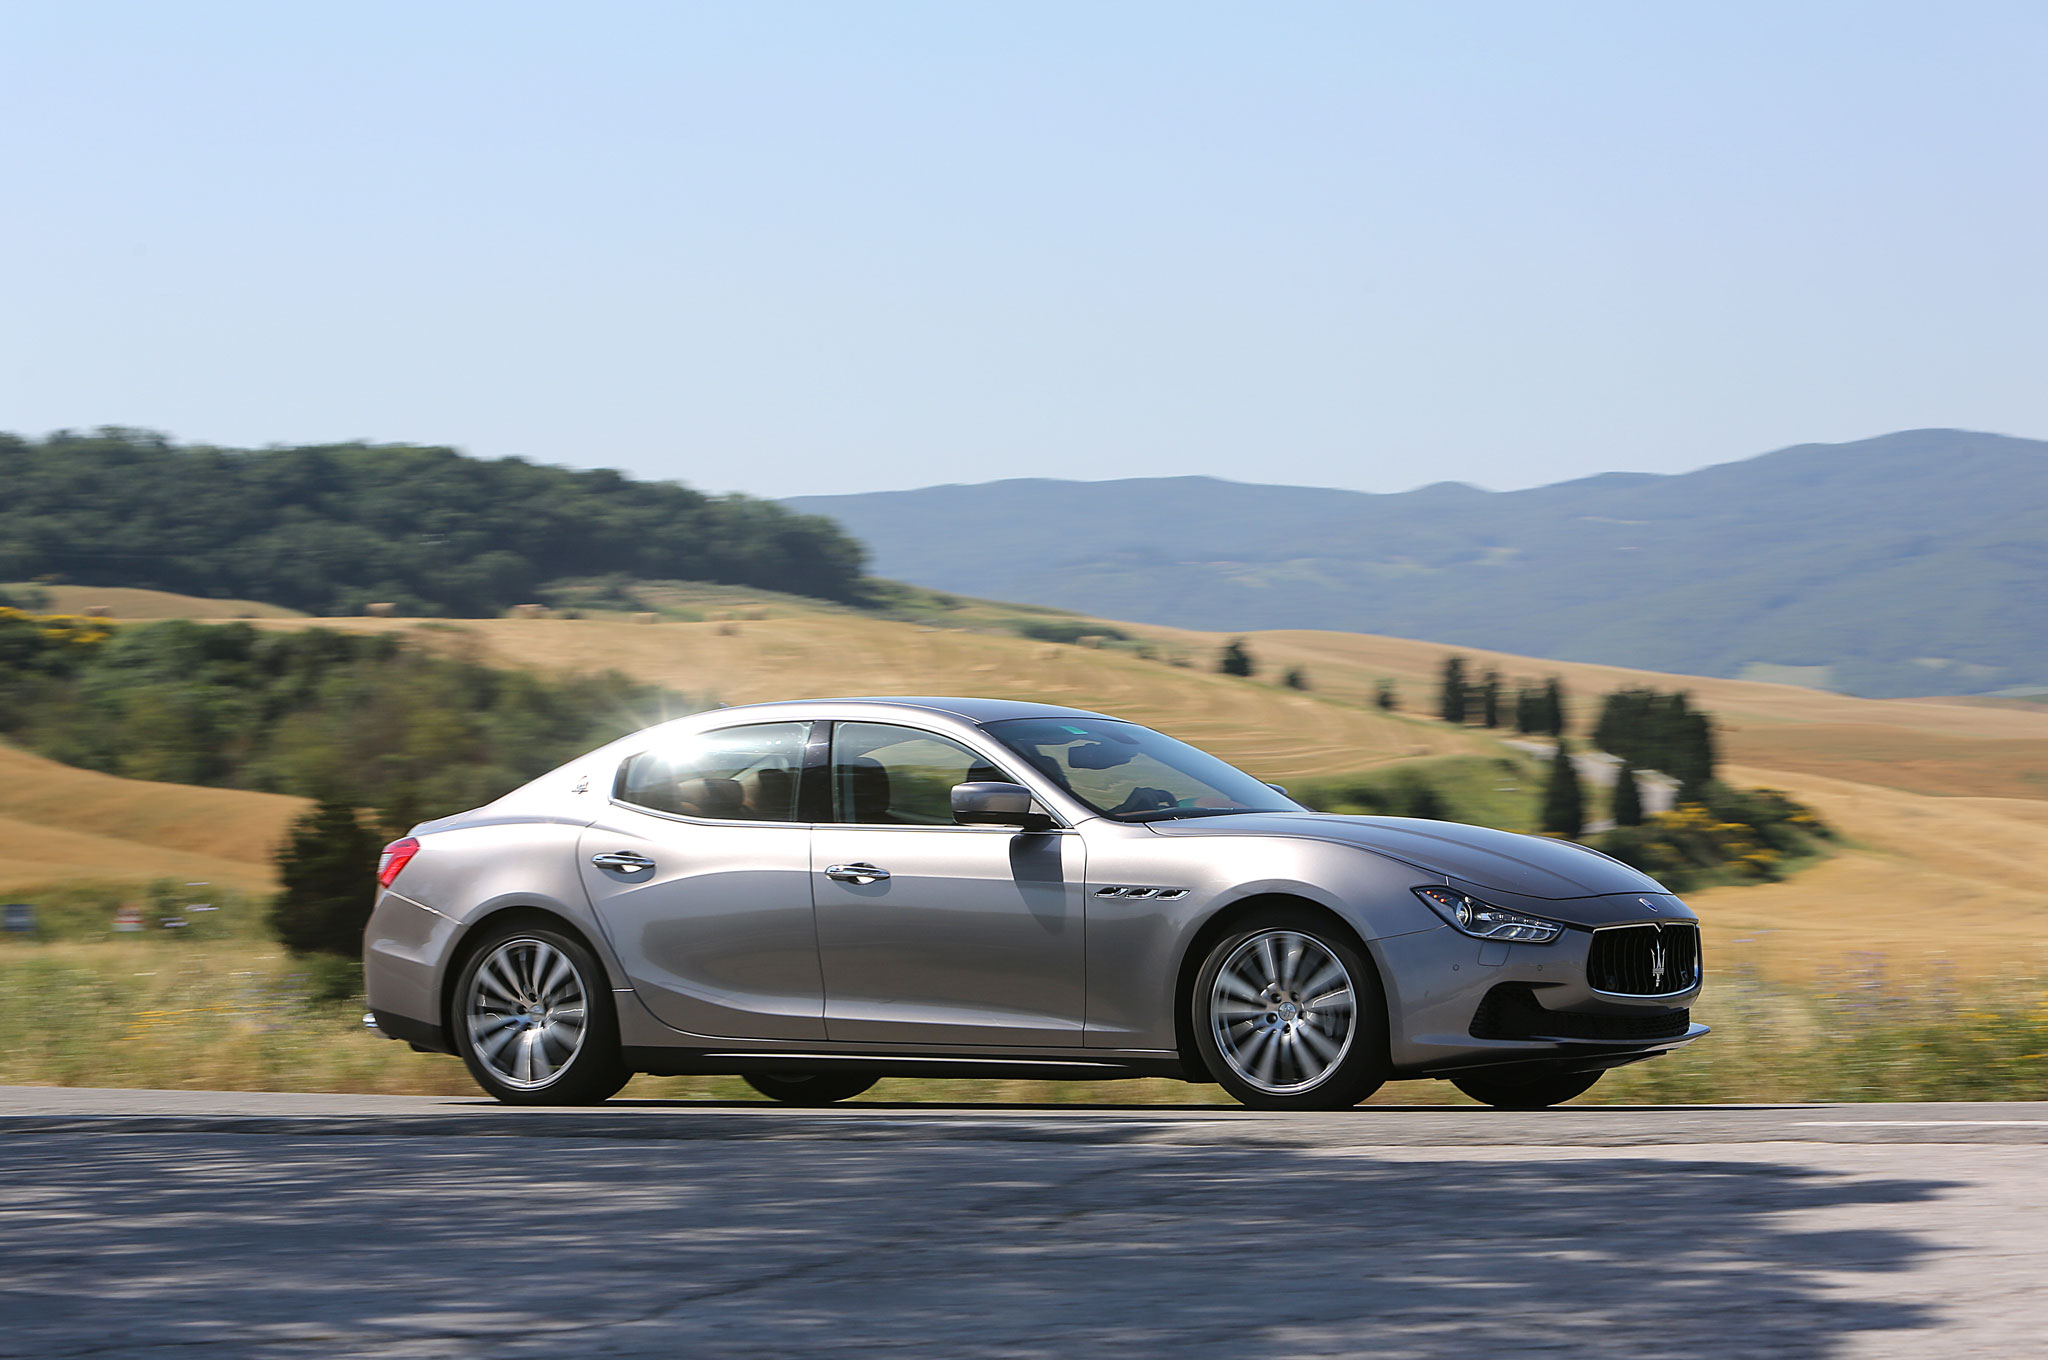 2014-Maserati-Ghibli-front-right-side-view-4